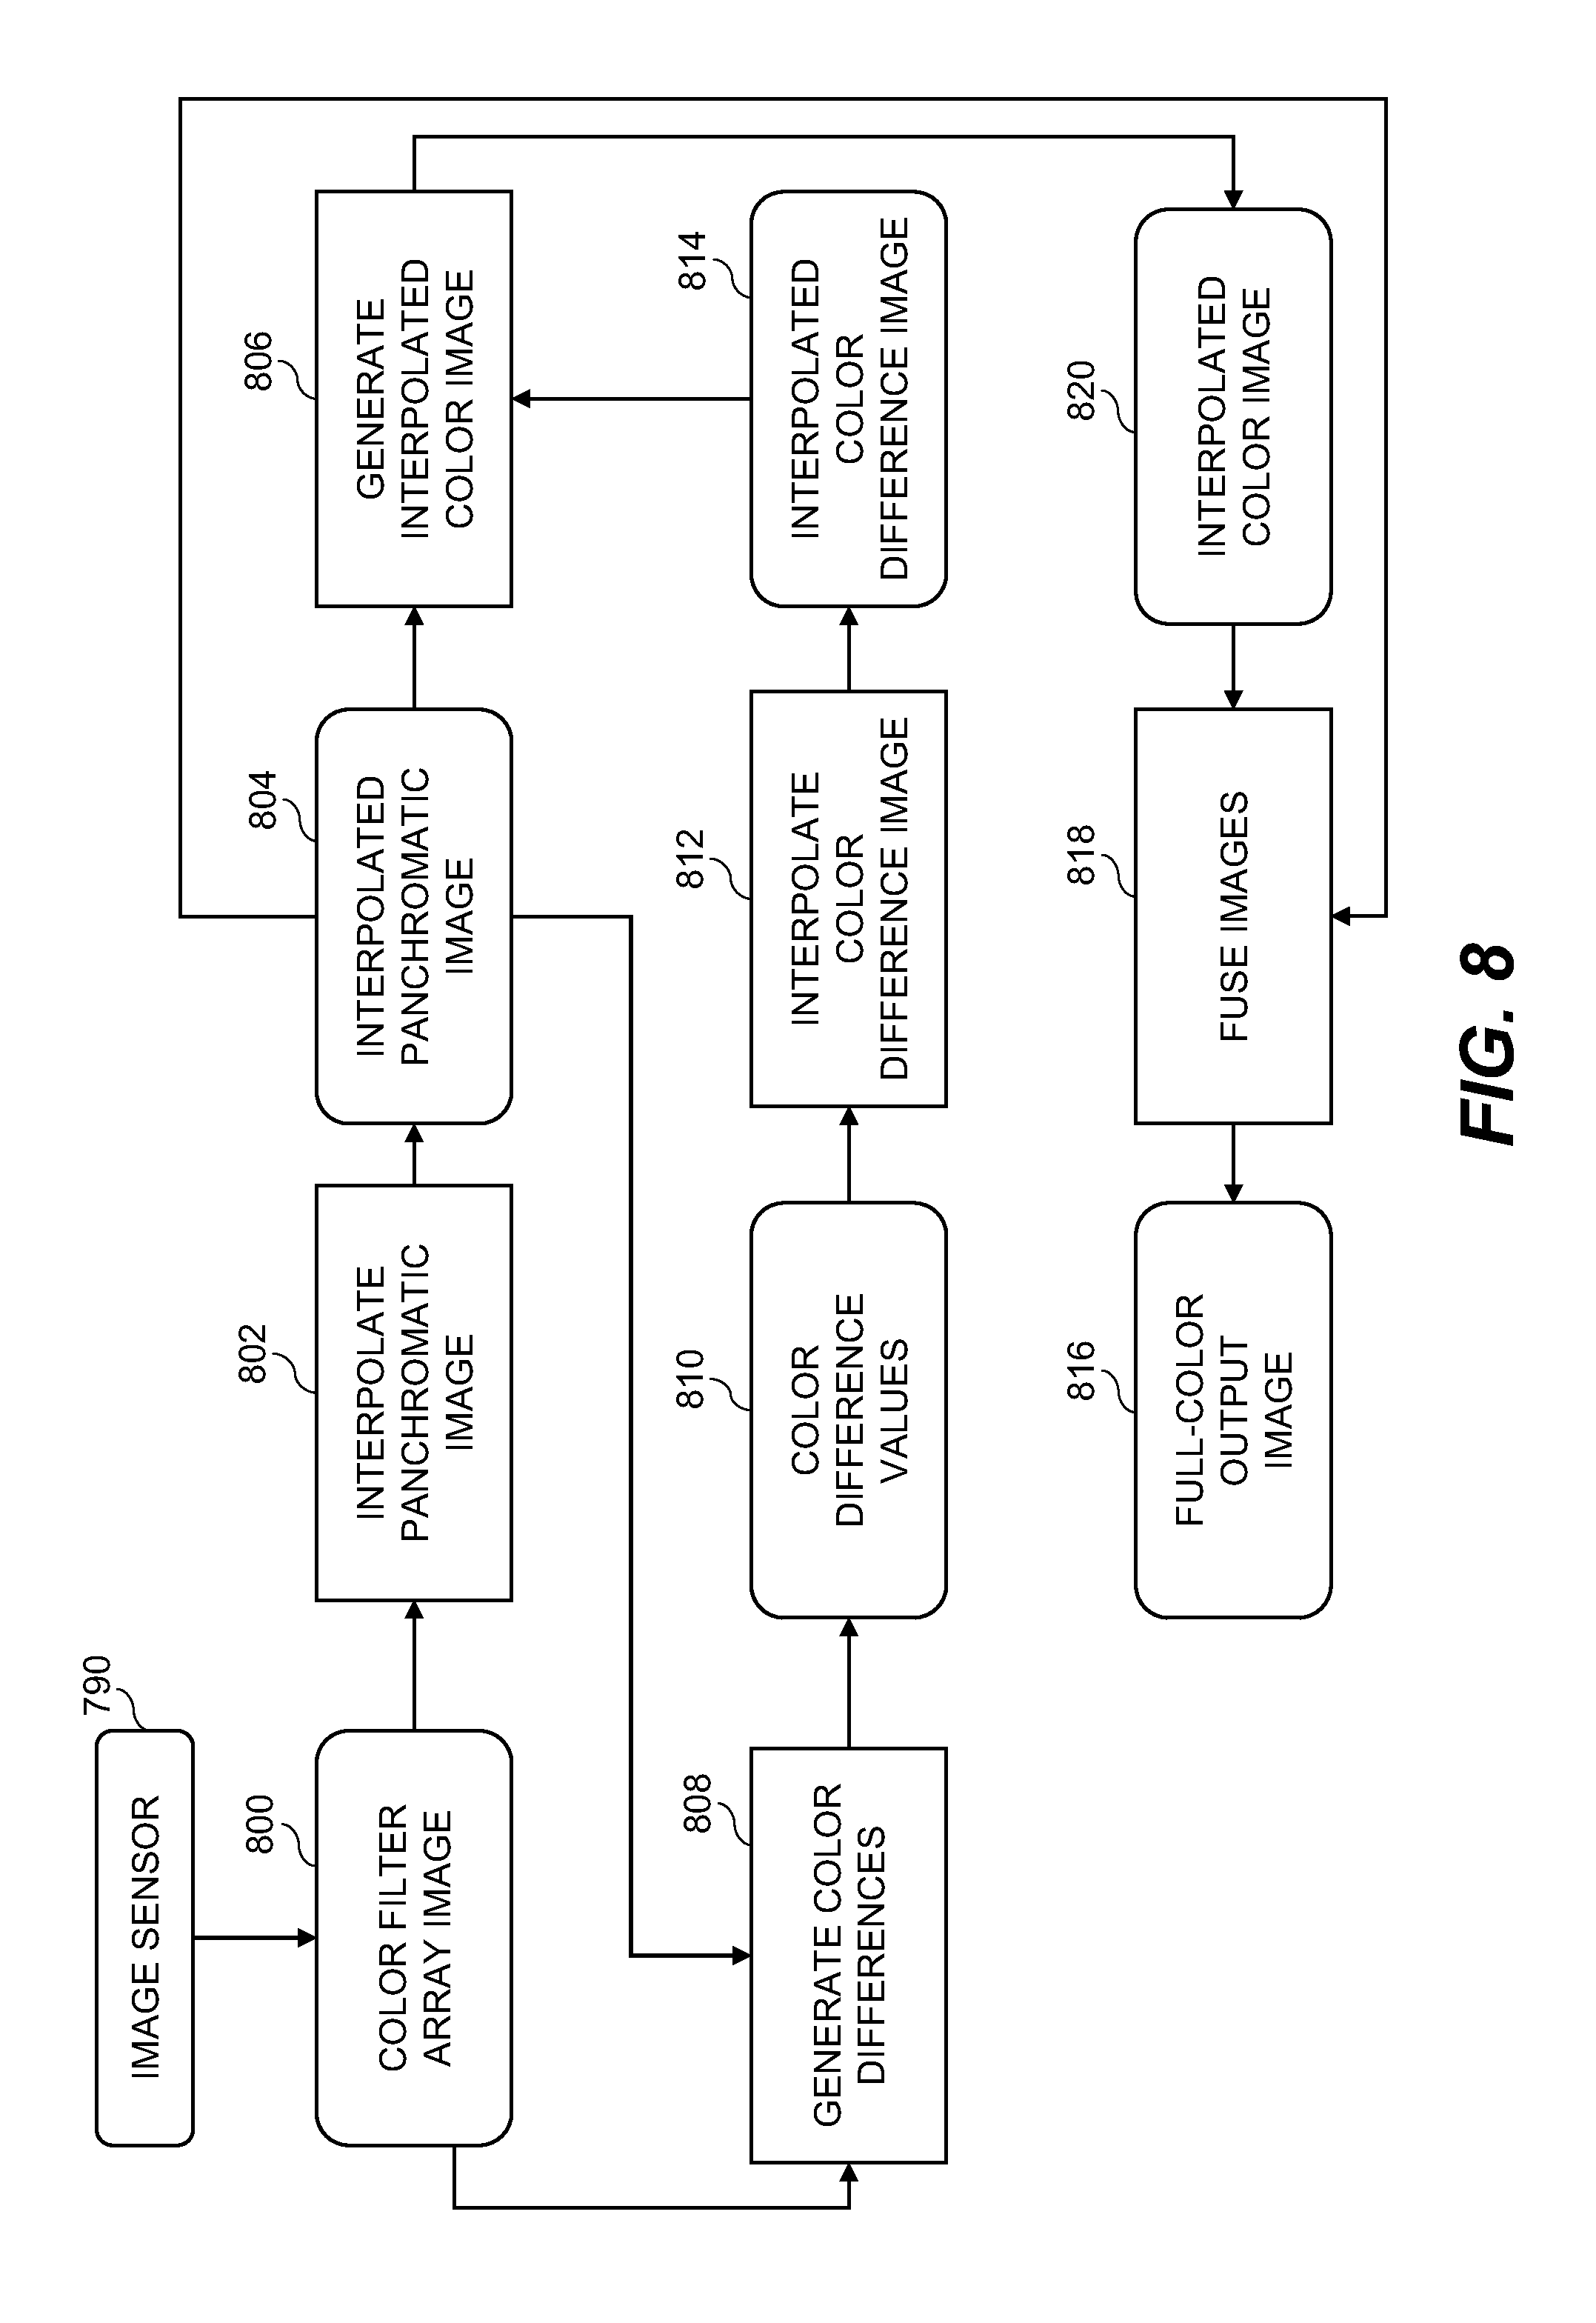 patent us8203615 - image deblurring using panchromatic pixels